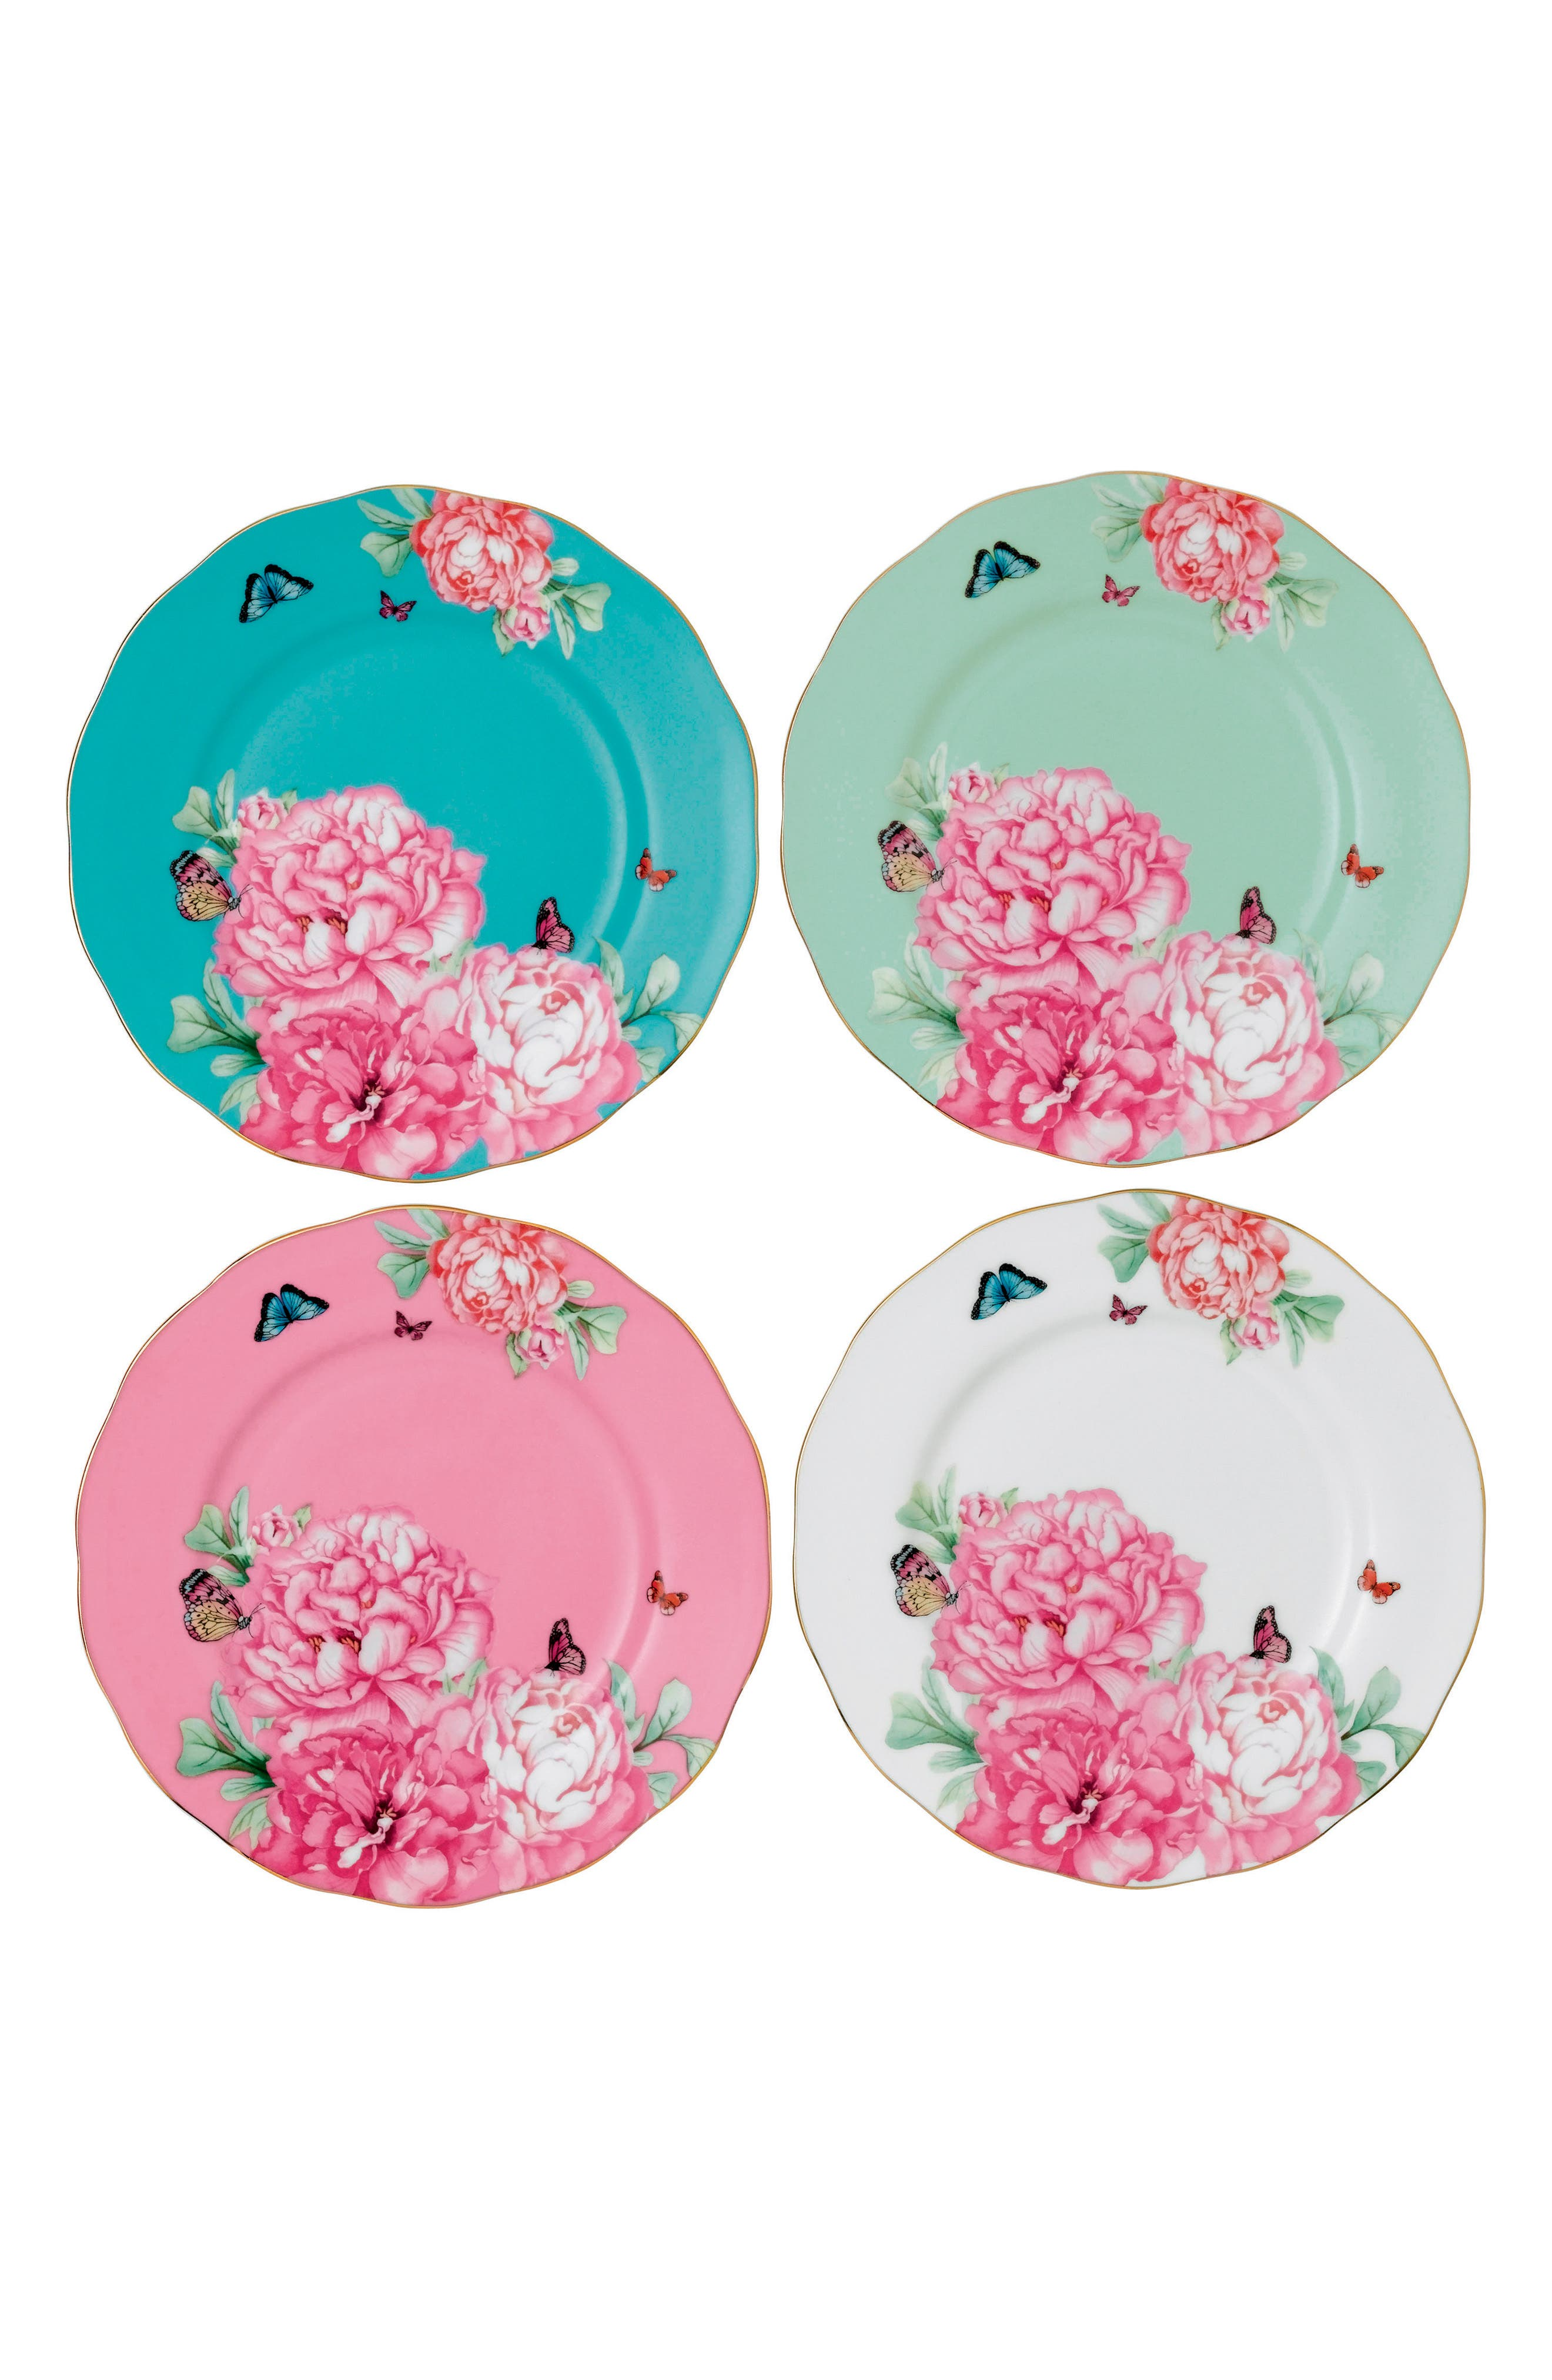 Alternate Image 1 Selected - Miranda Kerr for Royal Albert Friendship Set of 4 Accent Plates